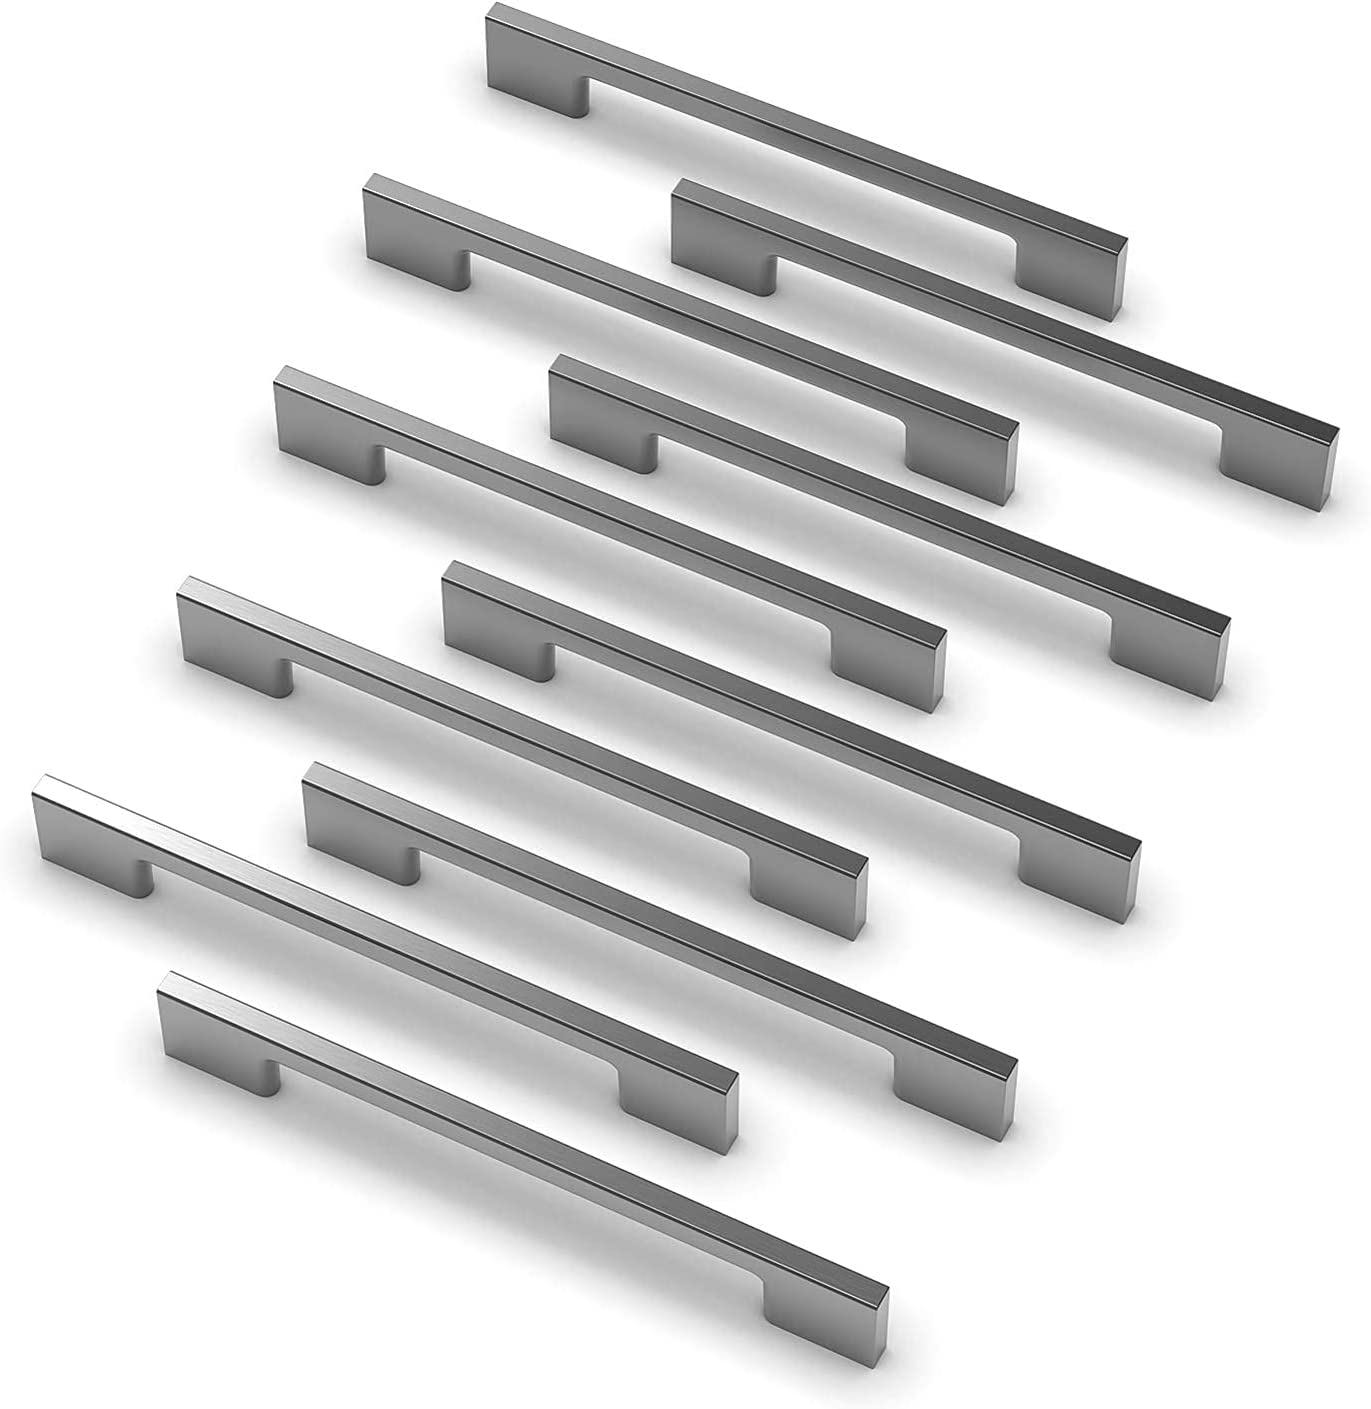 SRHWBF Cabinet Pulls Screws Zinc Cabin Sale Special Price Bar Handles Alloy Cheap mail order shopping